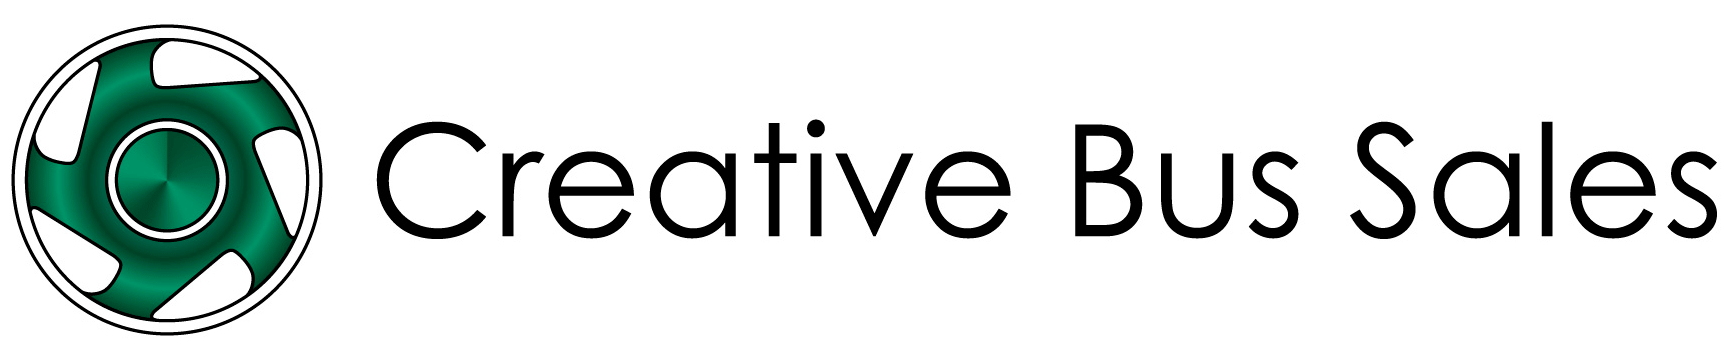 Creative Bus Sales Joins List of Gold Sponsors of CD